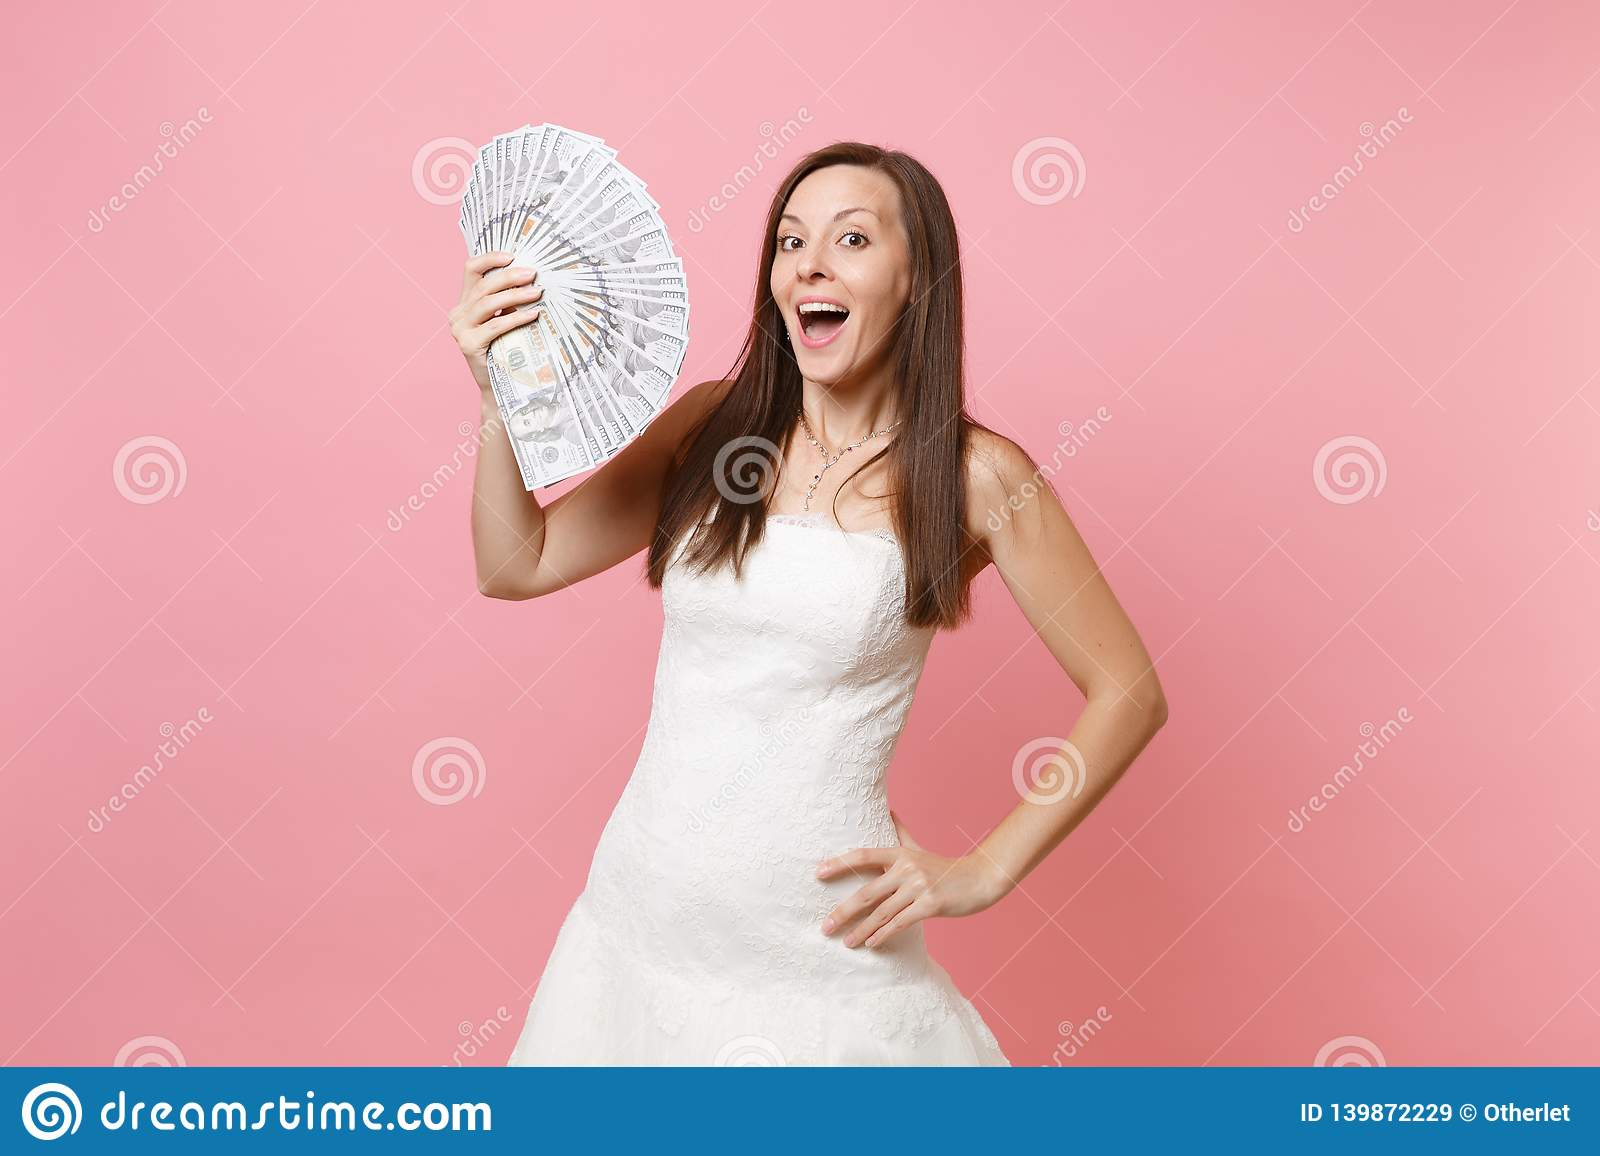 Excited Bride Woman In Lace White Wedding Dress Holding Bundle Lots